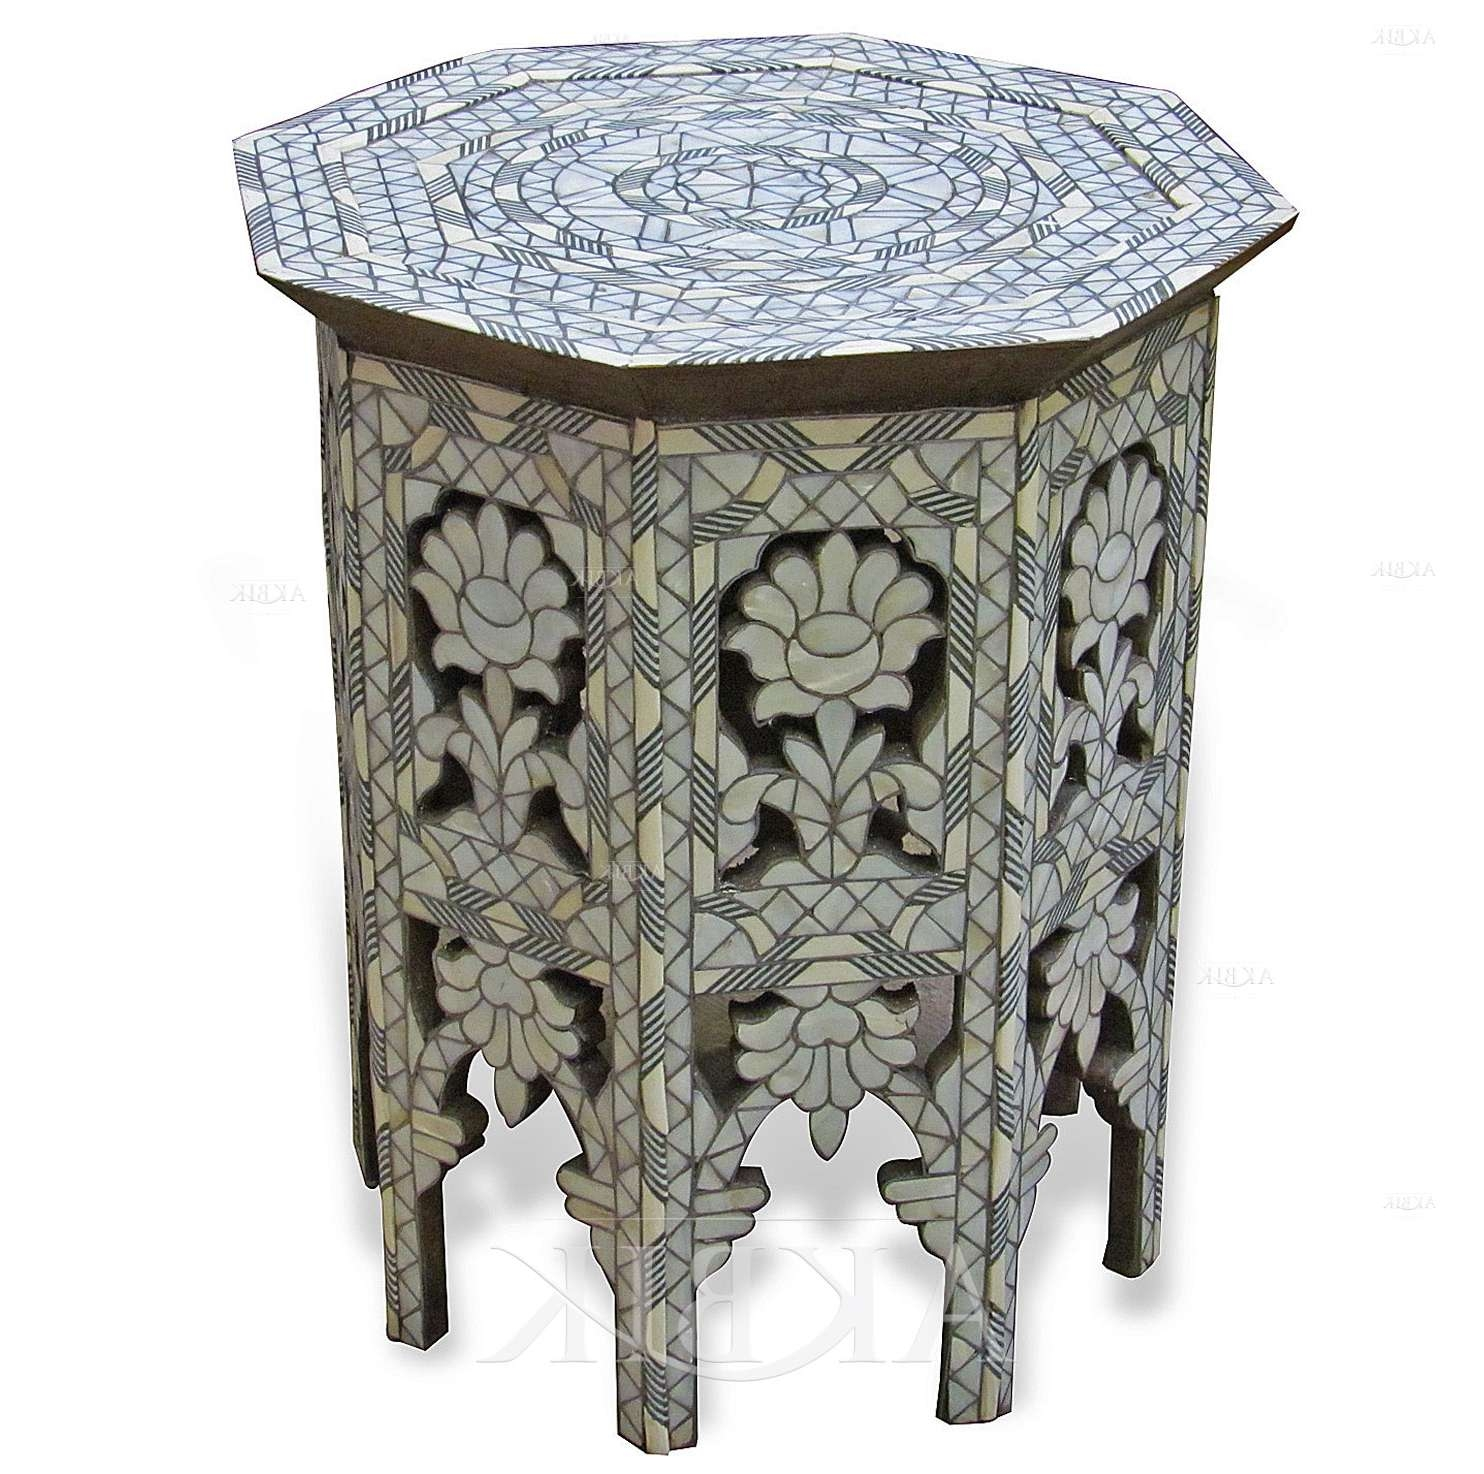 Mediterranean, Levantine & Syrian Furniture Inlaid With Mother Of Within Trendy Mother Of Pearl Coffee Tables (View 9 of 20)